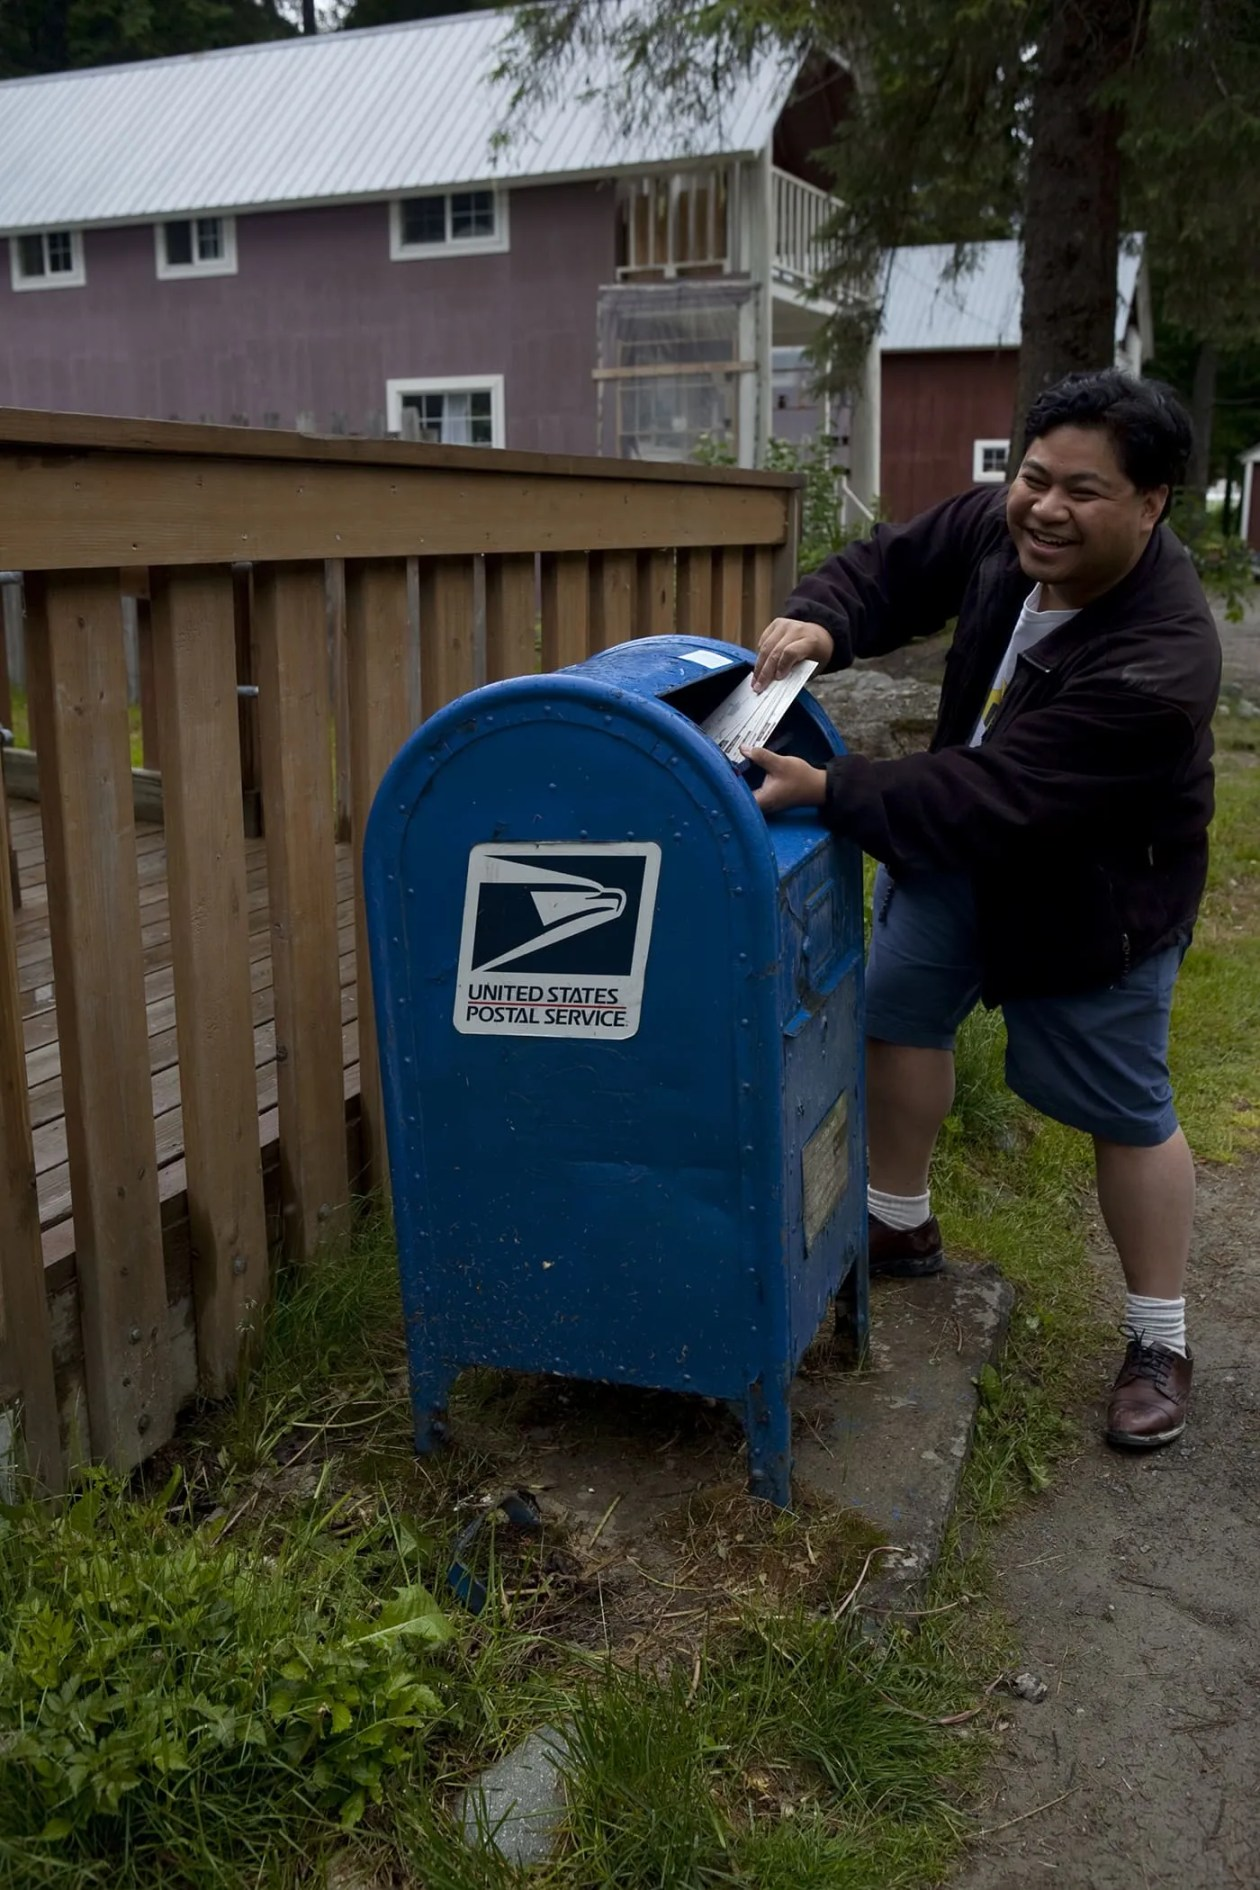 Mailing postcards at the Hyder, Alaska Post Office.